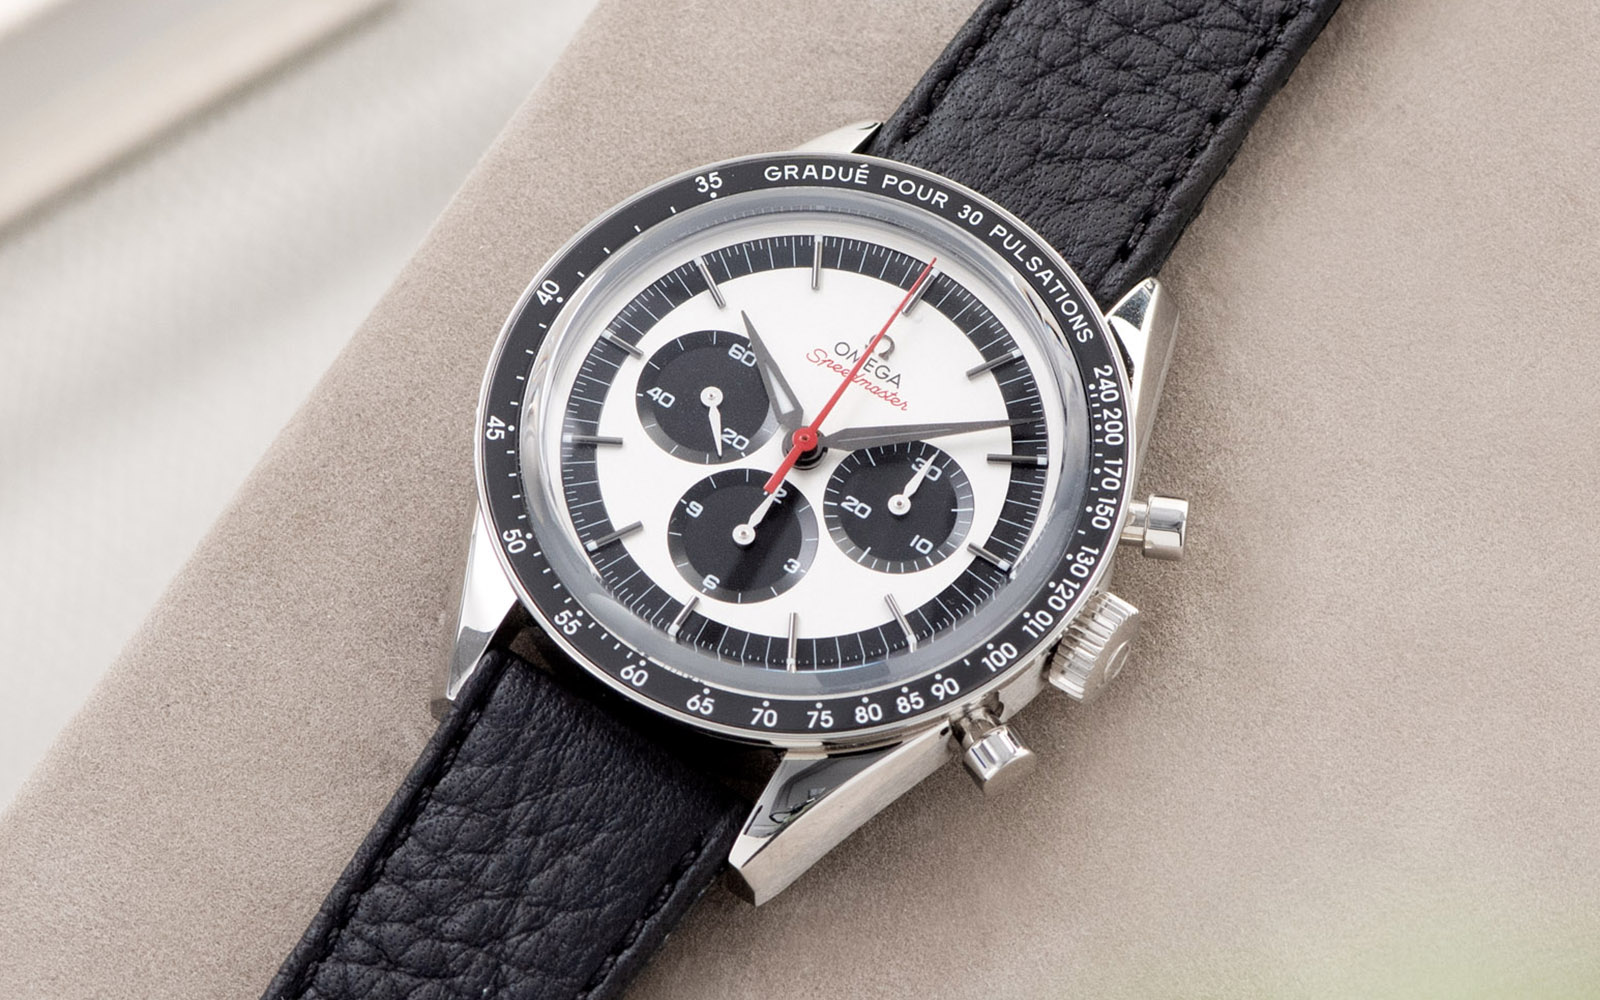 Bulang and Sons_Strap Guide_Omega Speedmaster 2998_Taurillon Black Speedy Leather Watch Strap